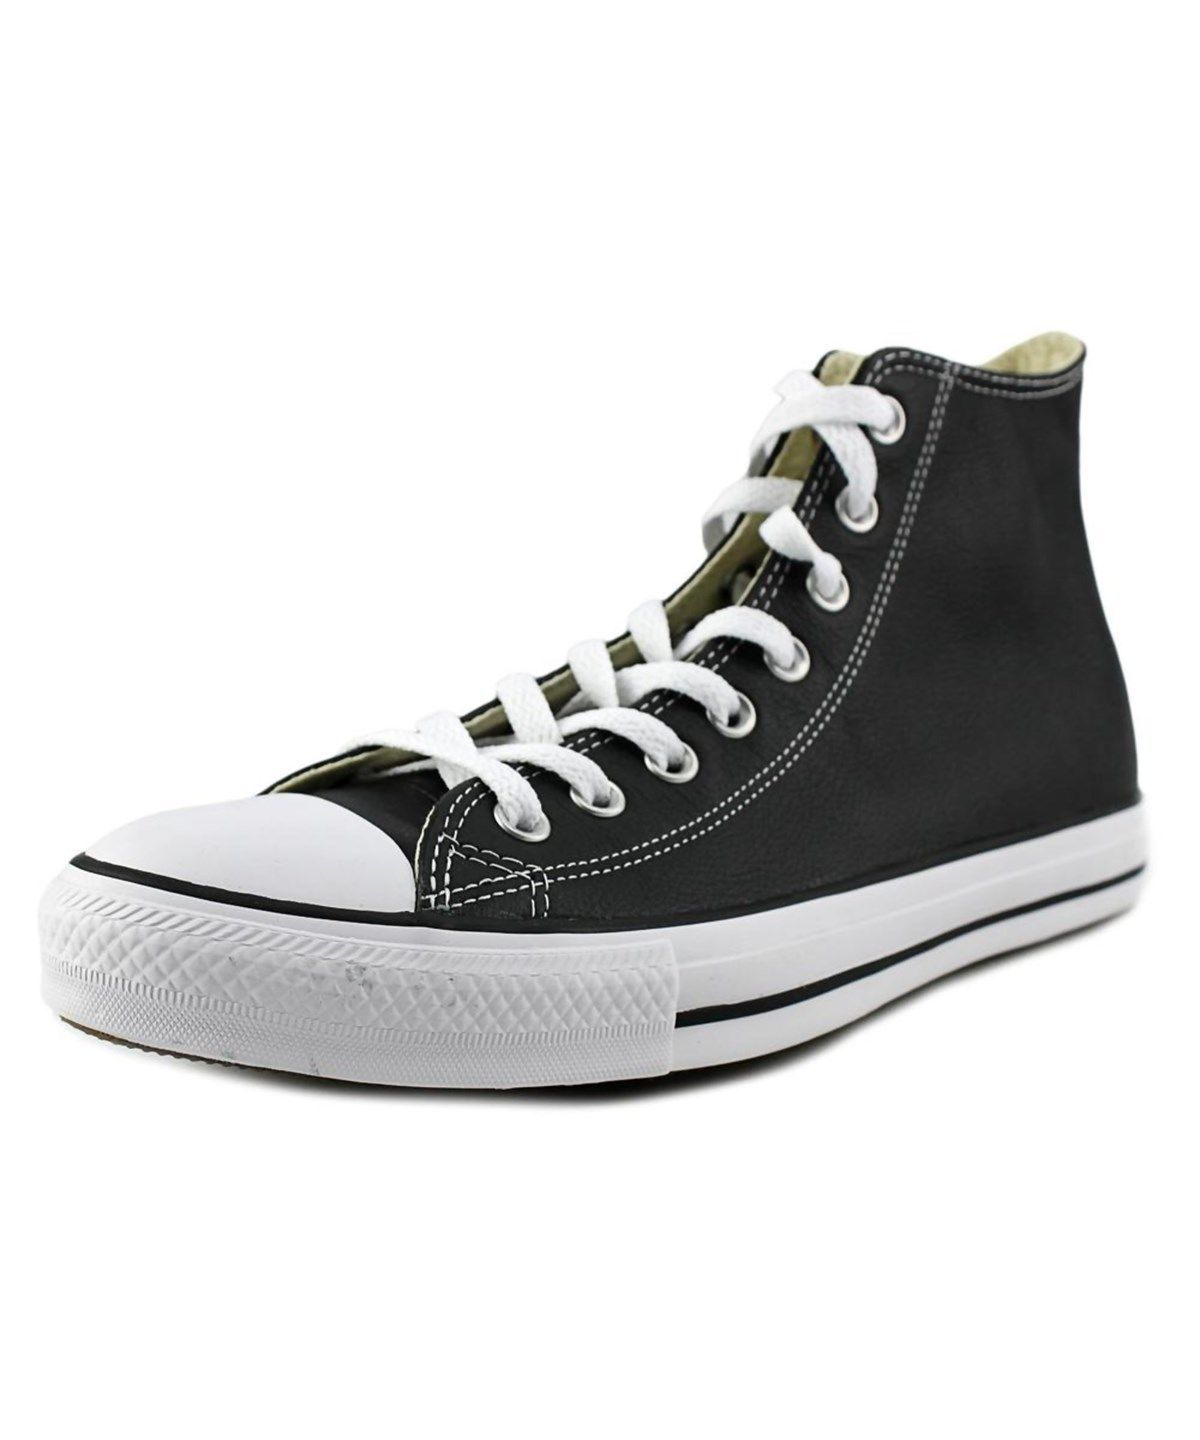 74f51defe2b CONVERSE Converse Chuck Taylor Hi Men Round Toe Leather Black Sneakers .   converse  shoes  sneakers